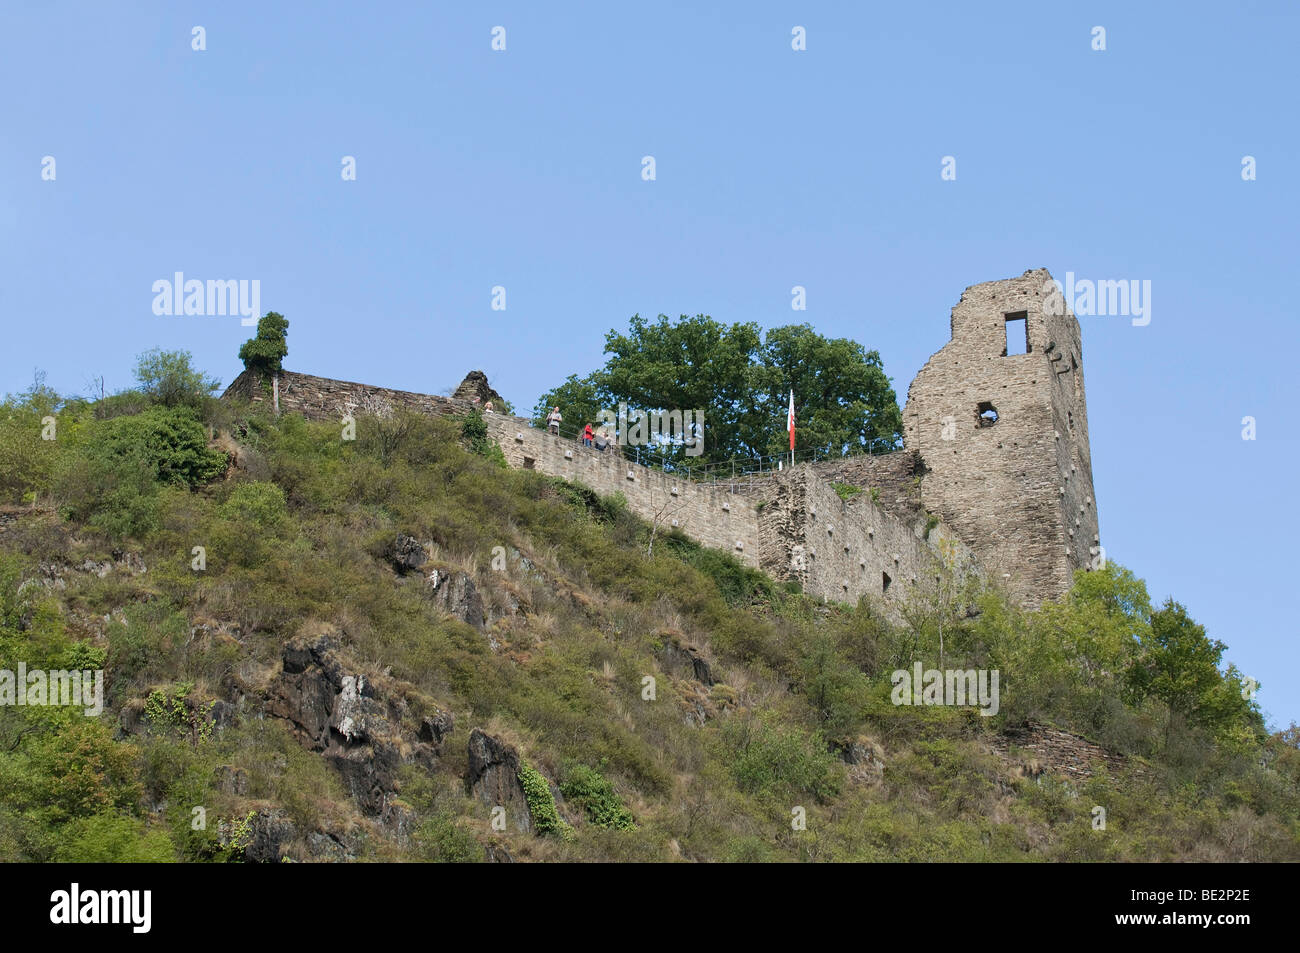 Ruins of Burg Are castle, Altenahr, Ahrtal valley, Rhineland-Palatinate, Germany, Europe - Stock Image